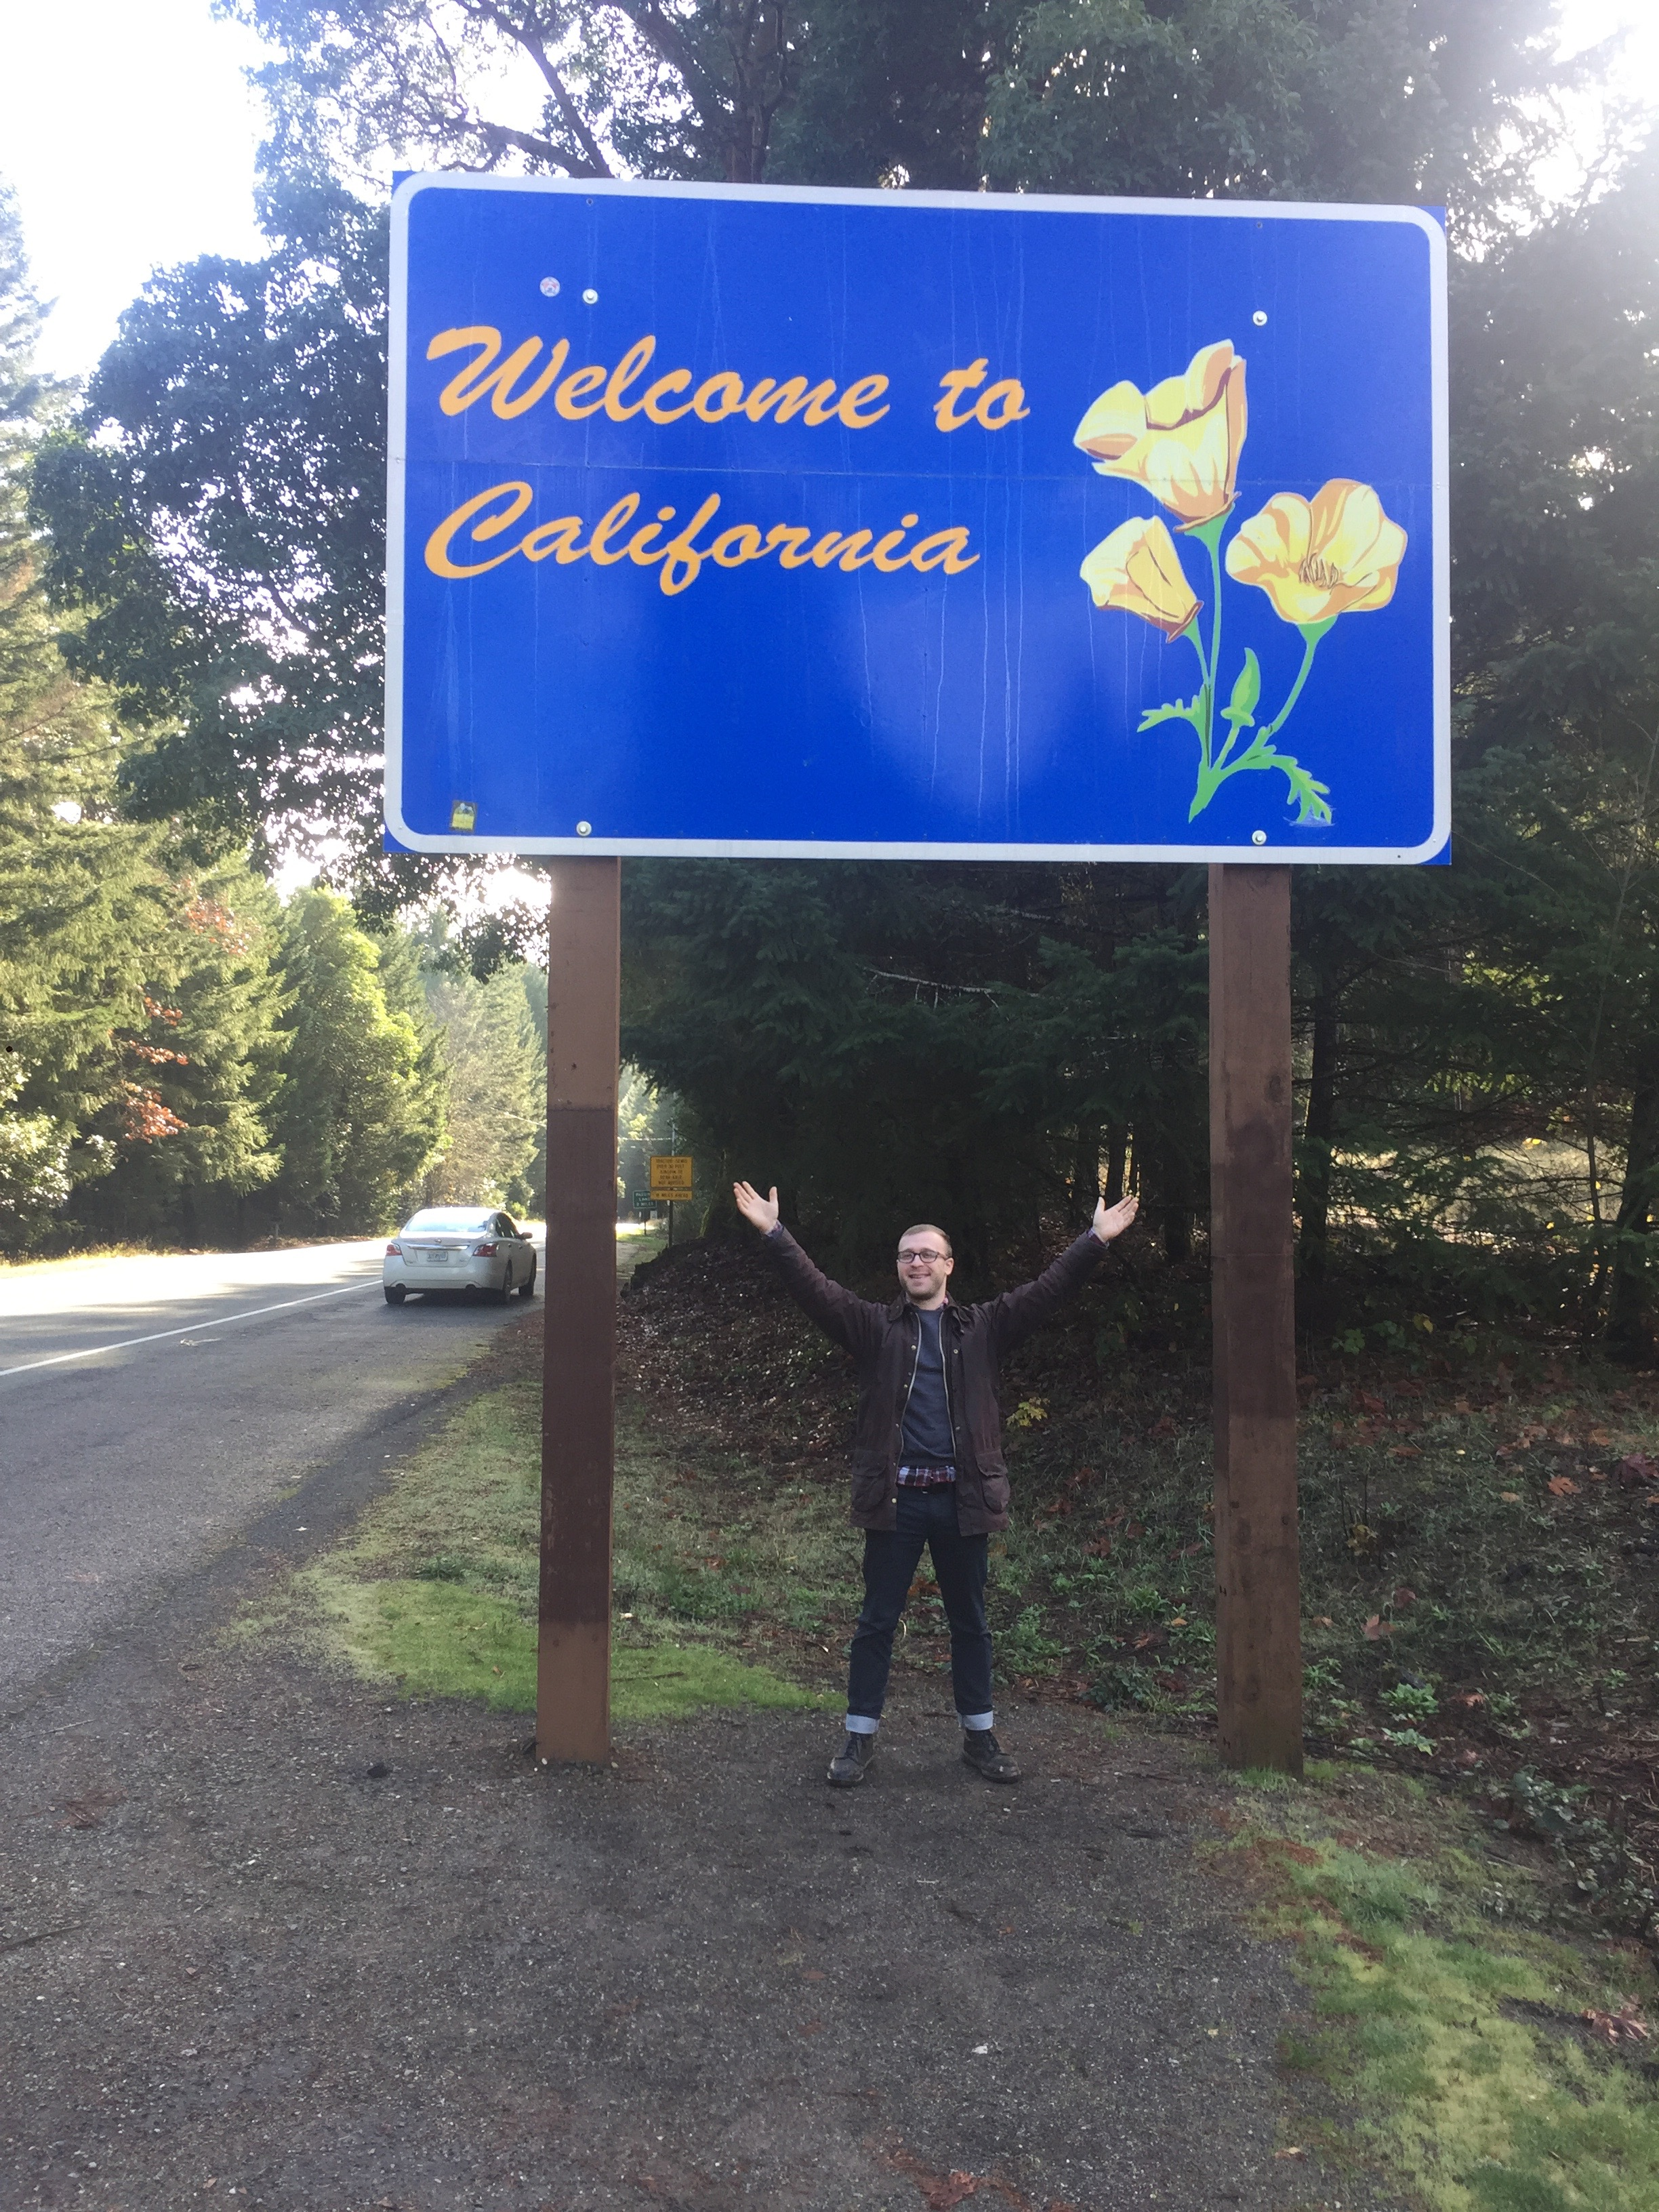 Tristan's first visit to California. We were on our way to see the Giant Redwoods. If you drive south on Rt 199 from Selma,Oregon, you will quickly be in California and Crescent City. Stay on course and you will arrive at The Trees of Mystery. Giant Redwoods at their best. There is a gondola ride which we chose not to do as it was pissing down the whole time.